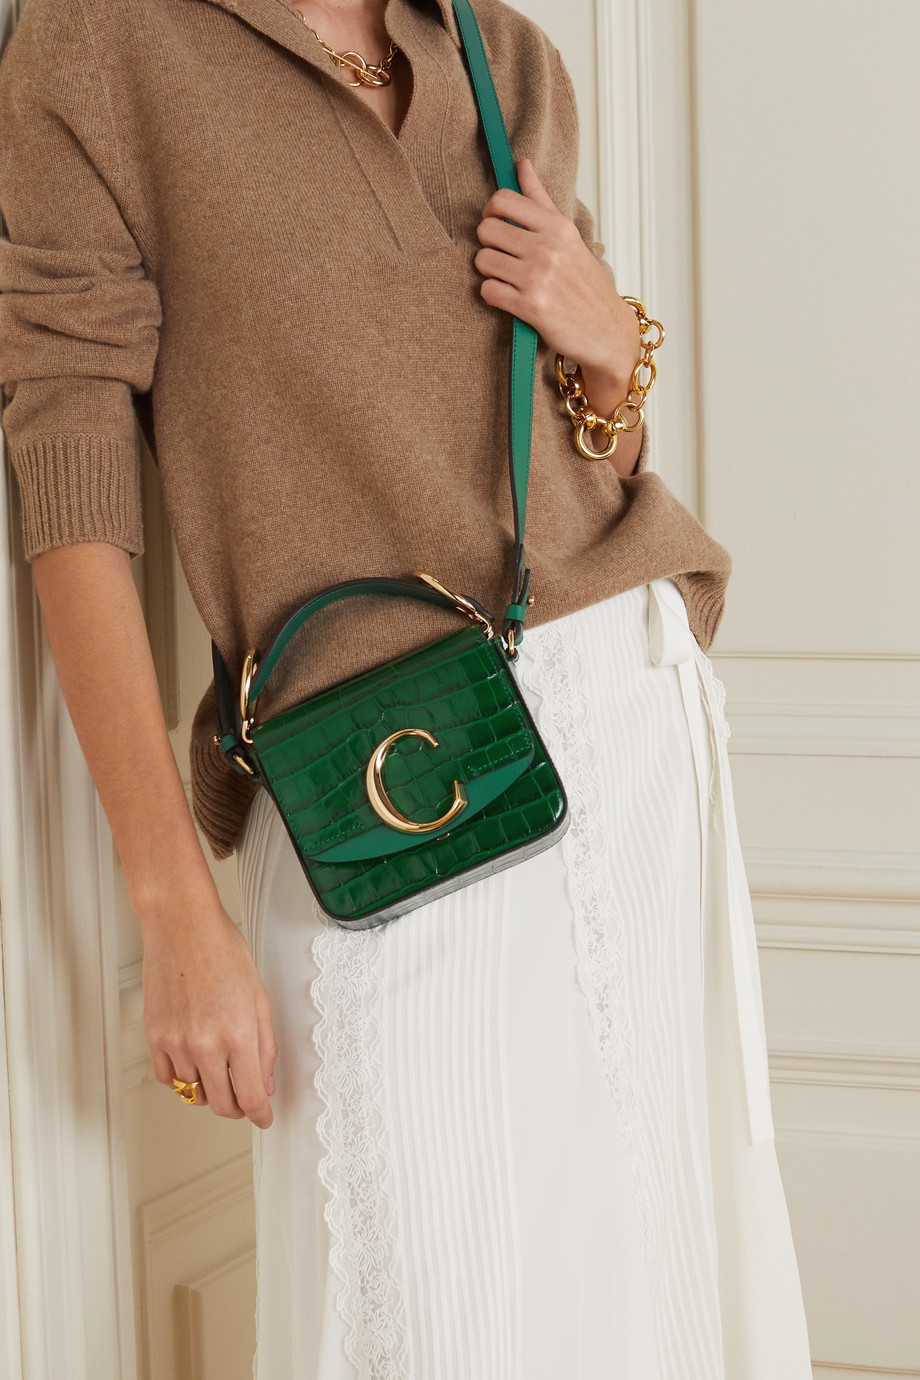 Chloé Chloé C mini suede-trimmed croc-effect leather shoulder bag